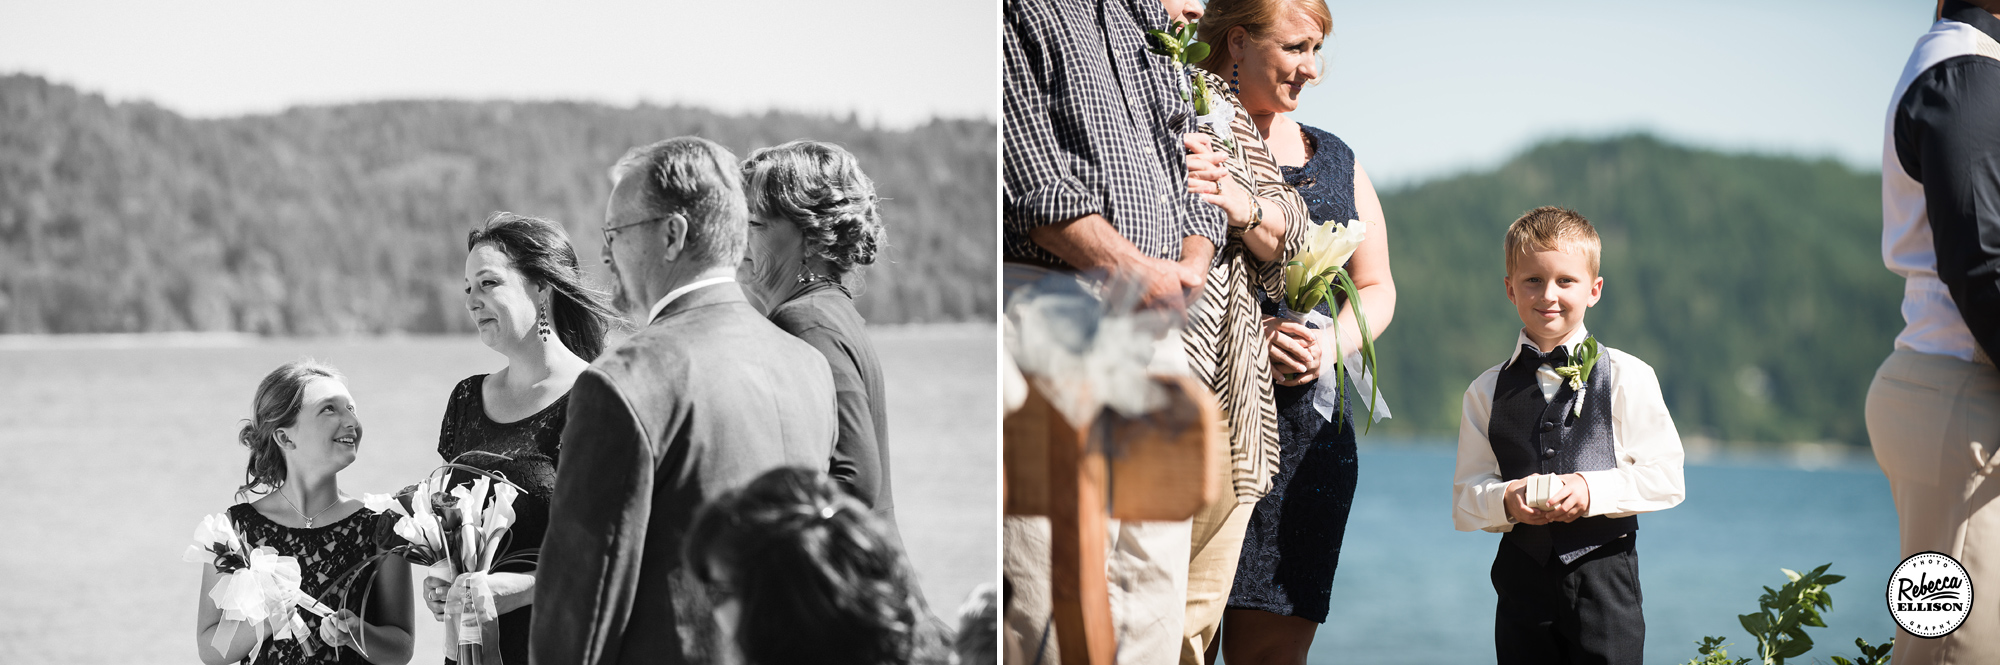 Wedding party during an outdoor wedding ceremony at the beach featuring Navy Blue dress photographed by Rebecca Ellison Photography